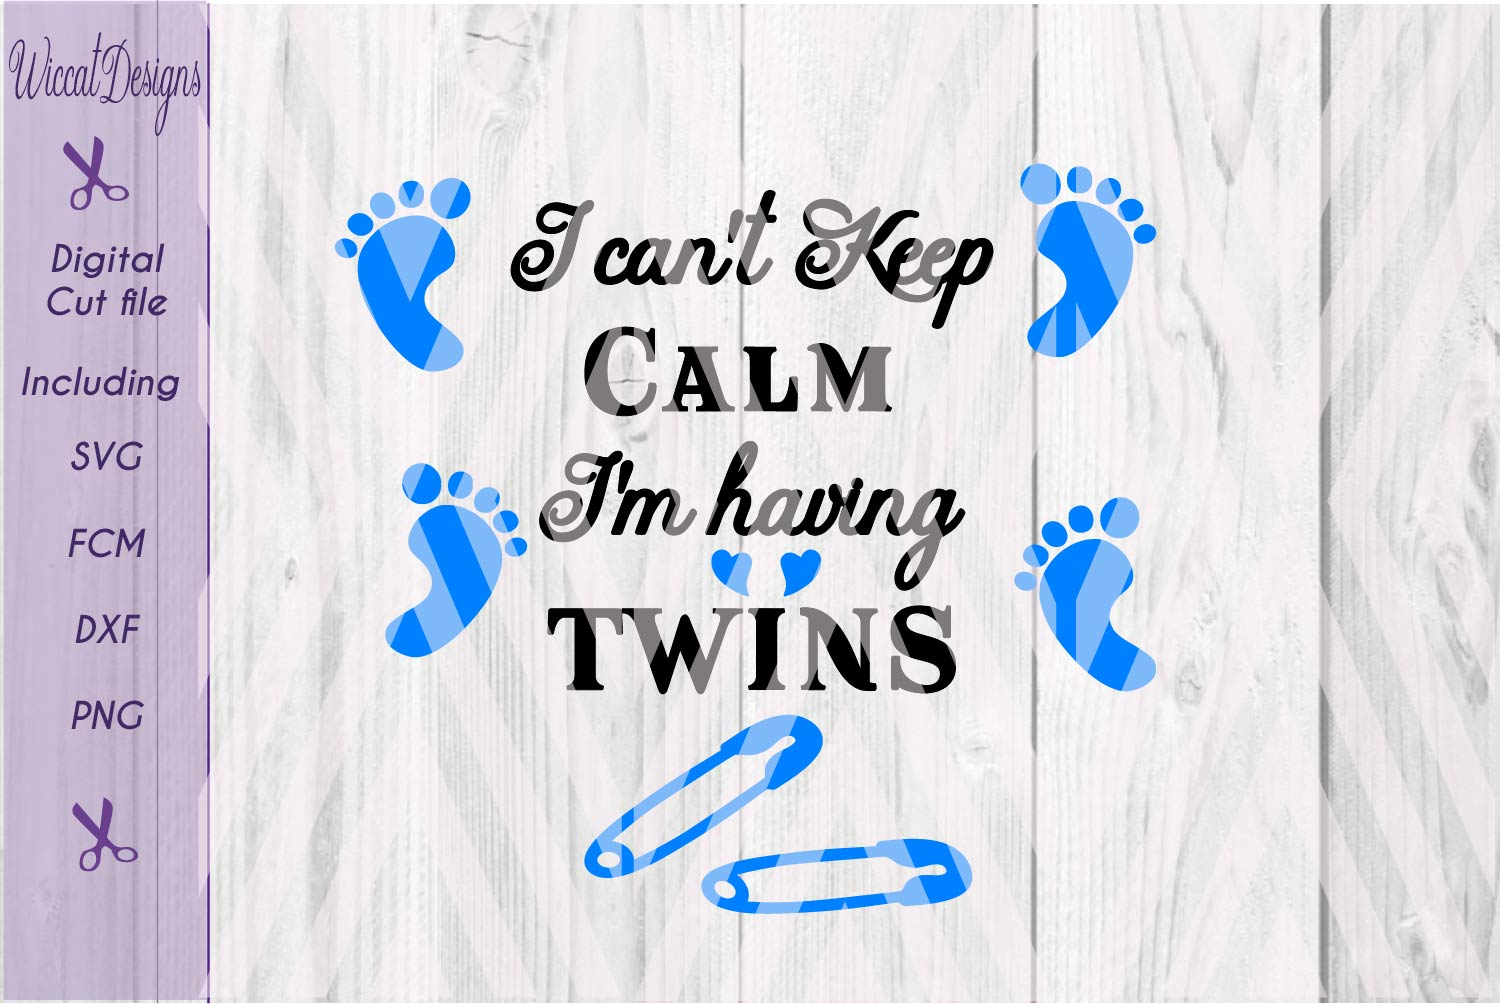 Twins svg, pregnant svg, Quotes svg, Keep calm svg, newborn example image 3